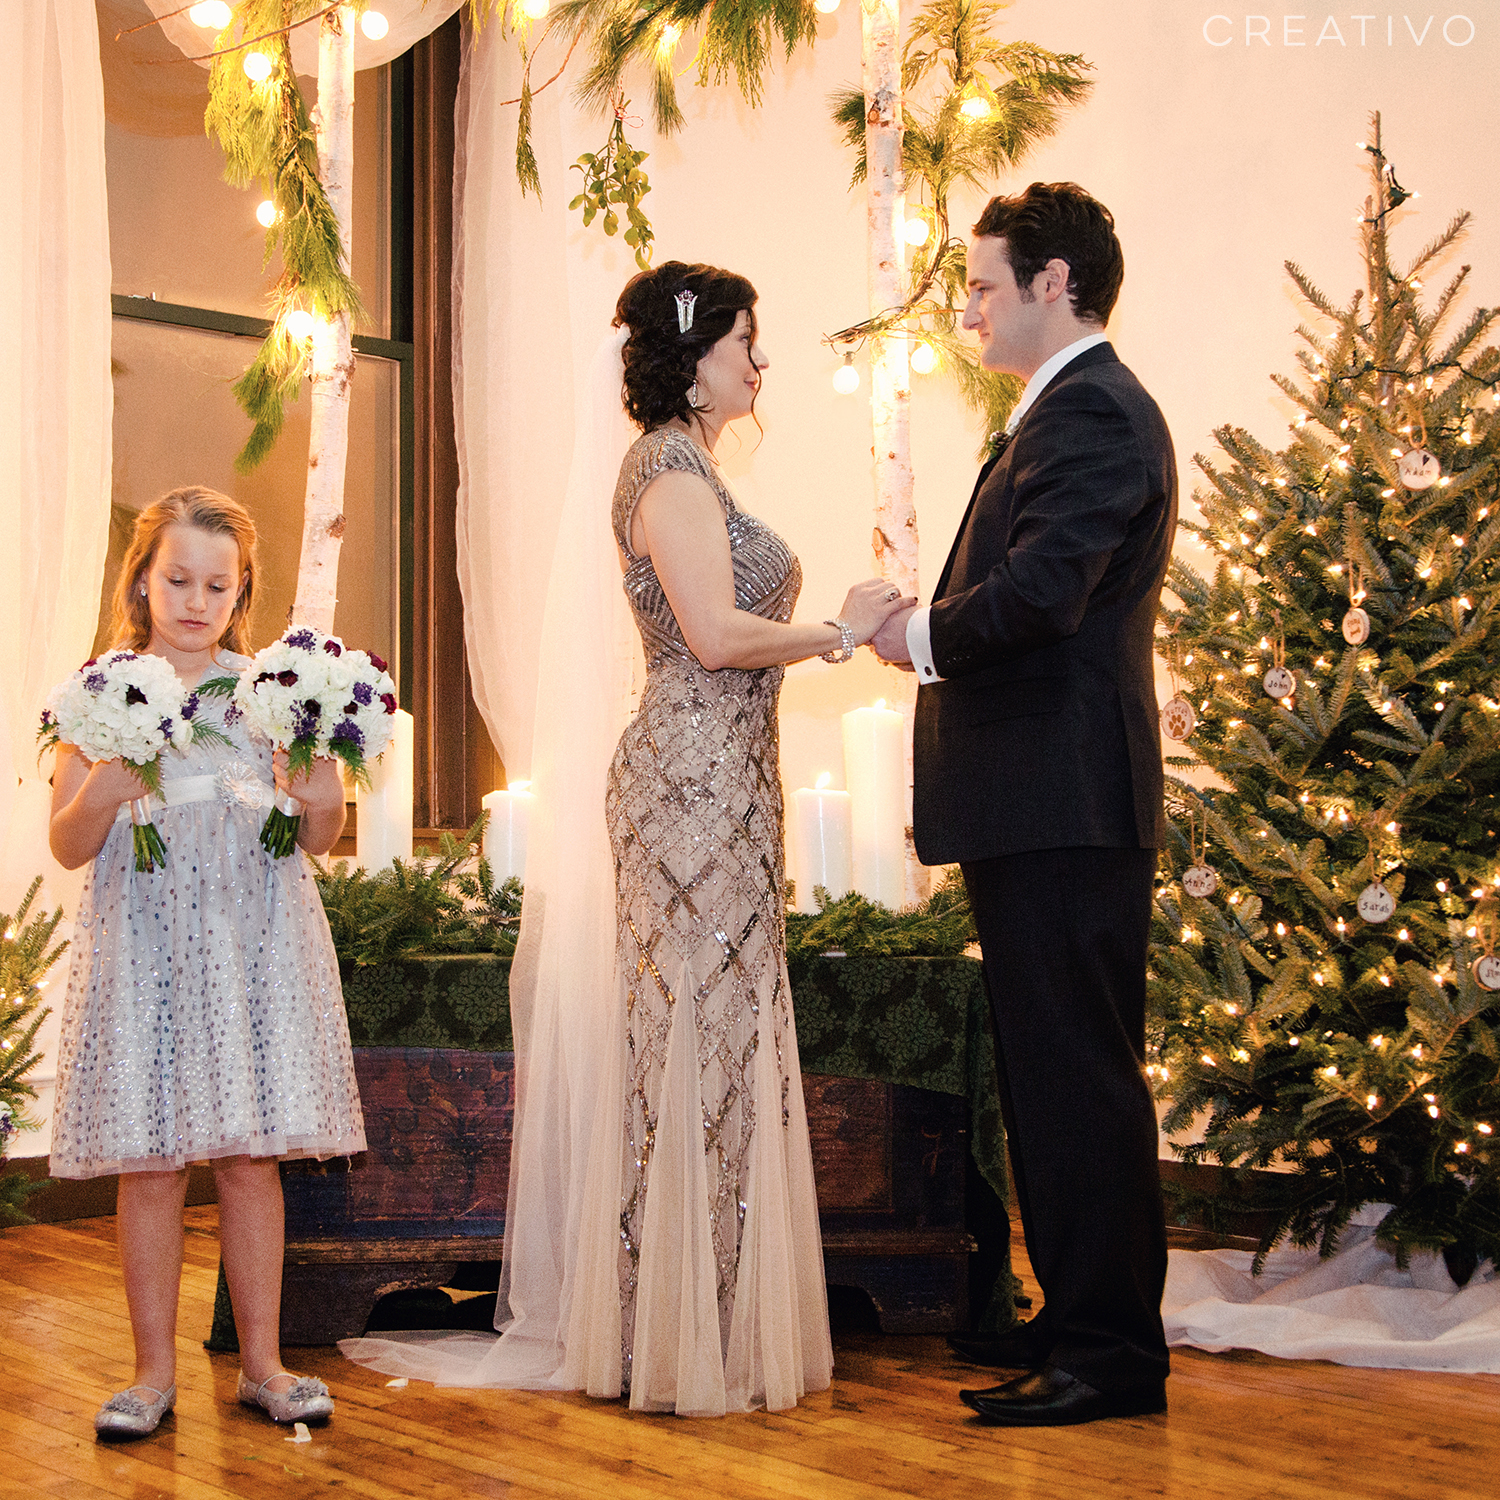 29. Holiday season elopement …. couples who are having trouble getting relatives to gather other times of the year can plan a wedding date before or after a the family holiday celebration when at least your closest family members will be gathered in town